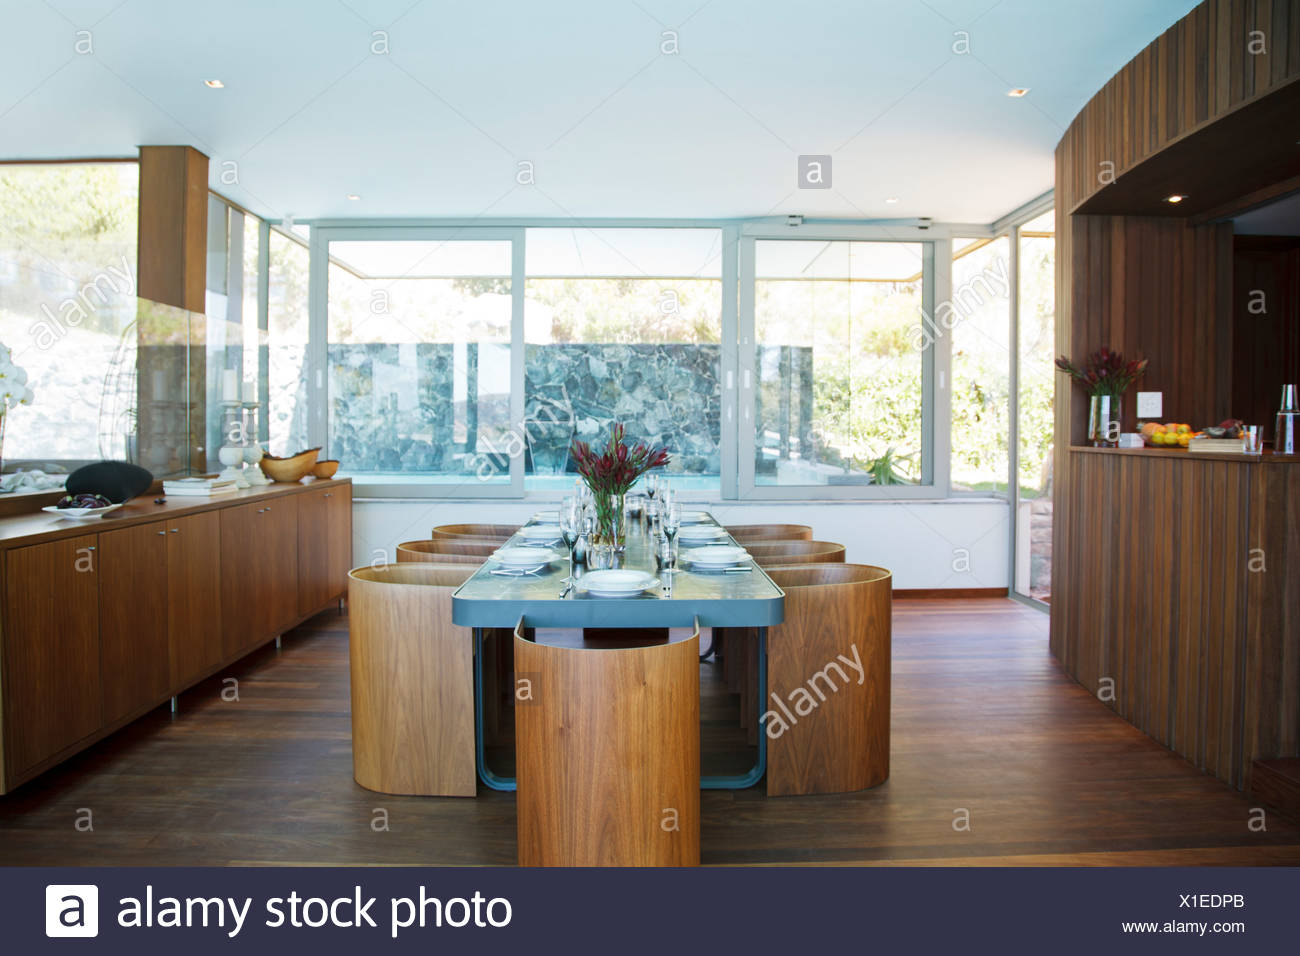 Dining Room Ready Stock Photos & Dining Room Ready Stock Images - Alamy